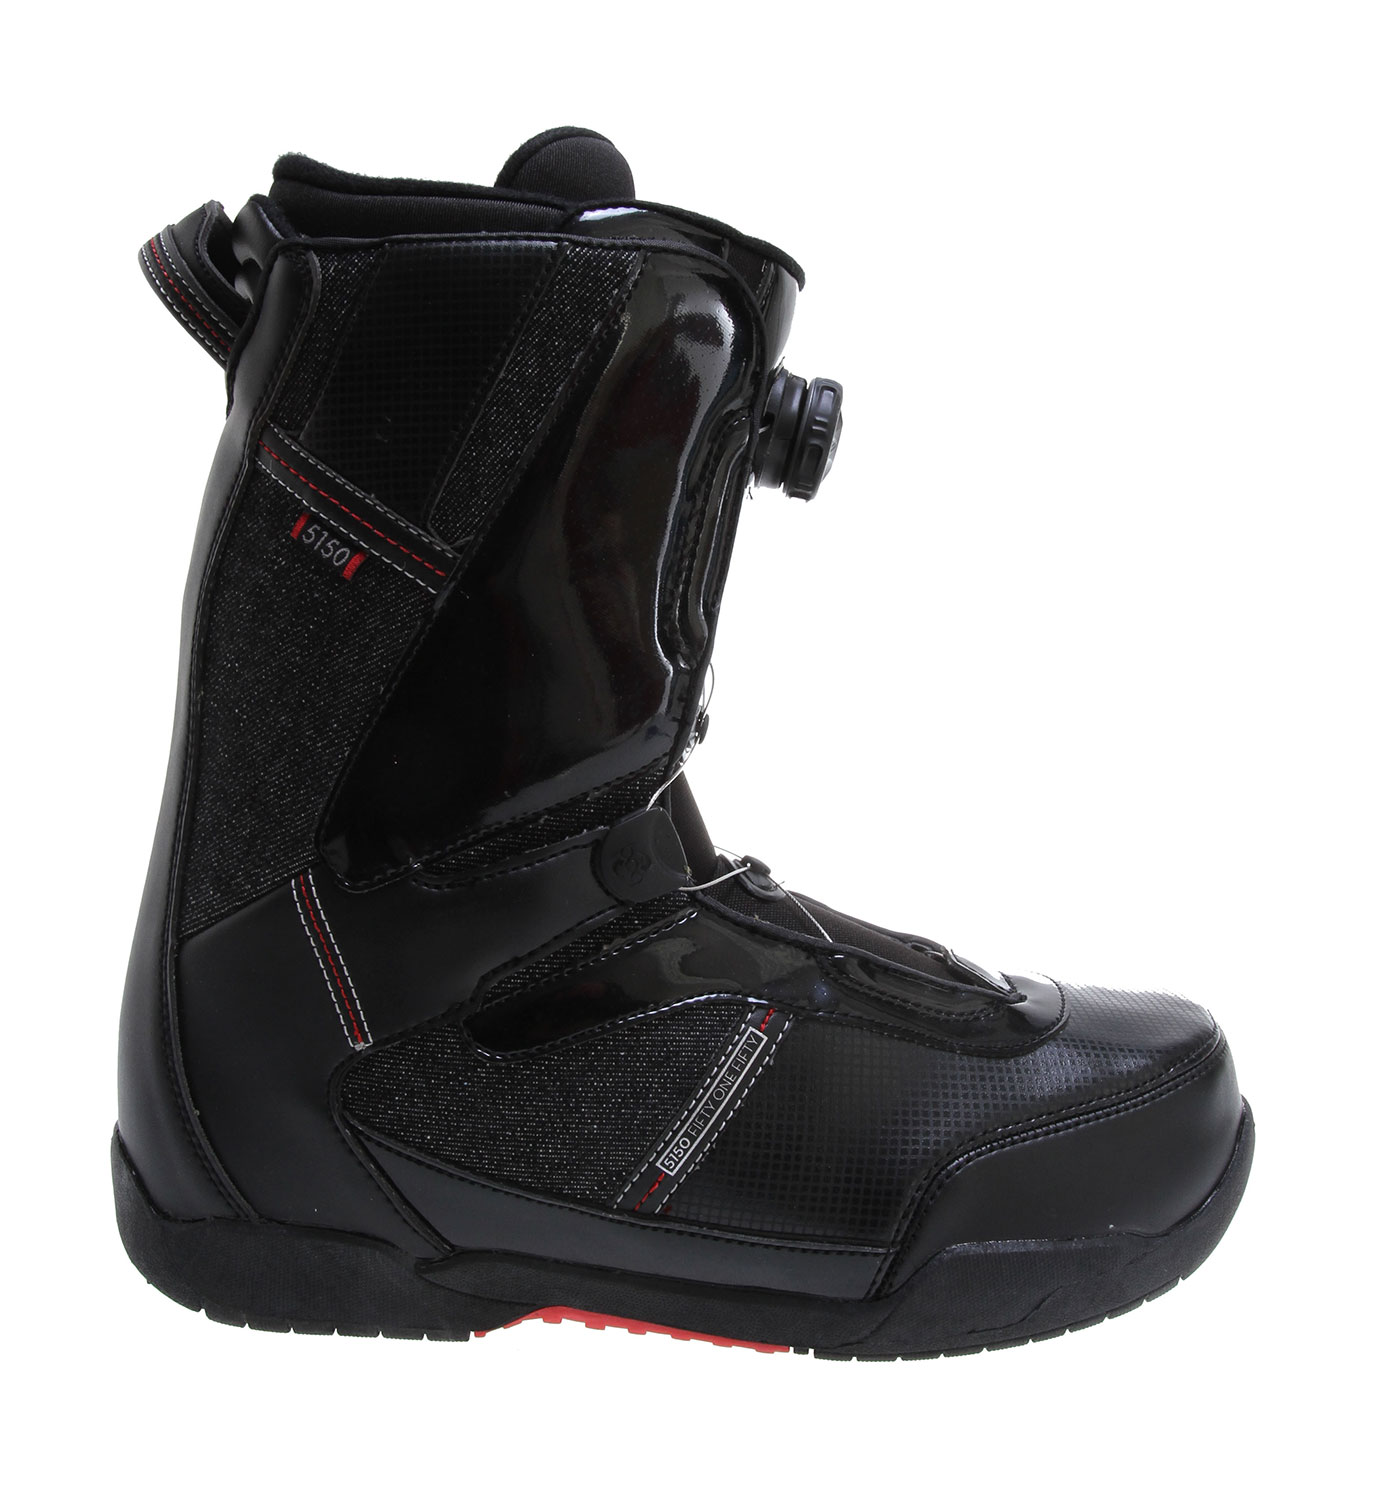 Snowboard The Legion's slim profile, high performance design comes complete with a PowerPlus thermo-formable EVA Liner, BOA lacing and lateral stiffening overlays, to ensure top performance and comfort in a stylish package.Key Features of the 5150 Legion Boa Snowboard Boots :  BOA closure system provides ultimate fit and on-the-fly adjustment  Path CTS Outsole with durable rubber for a grip that won't slip  PowerPlus EVA Liner with Power-Lace closure, Lace Lock, Performance Ankle Pocket, Flex-Toe design and removable insole  Durable body construction with lateral stiffening overlays  Multi-Zone ankle flex points - $84.95